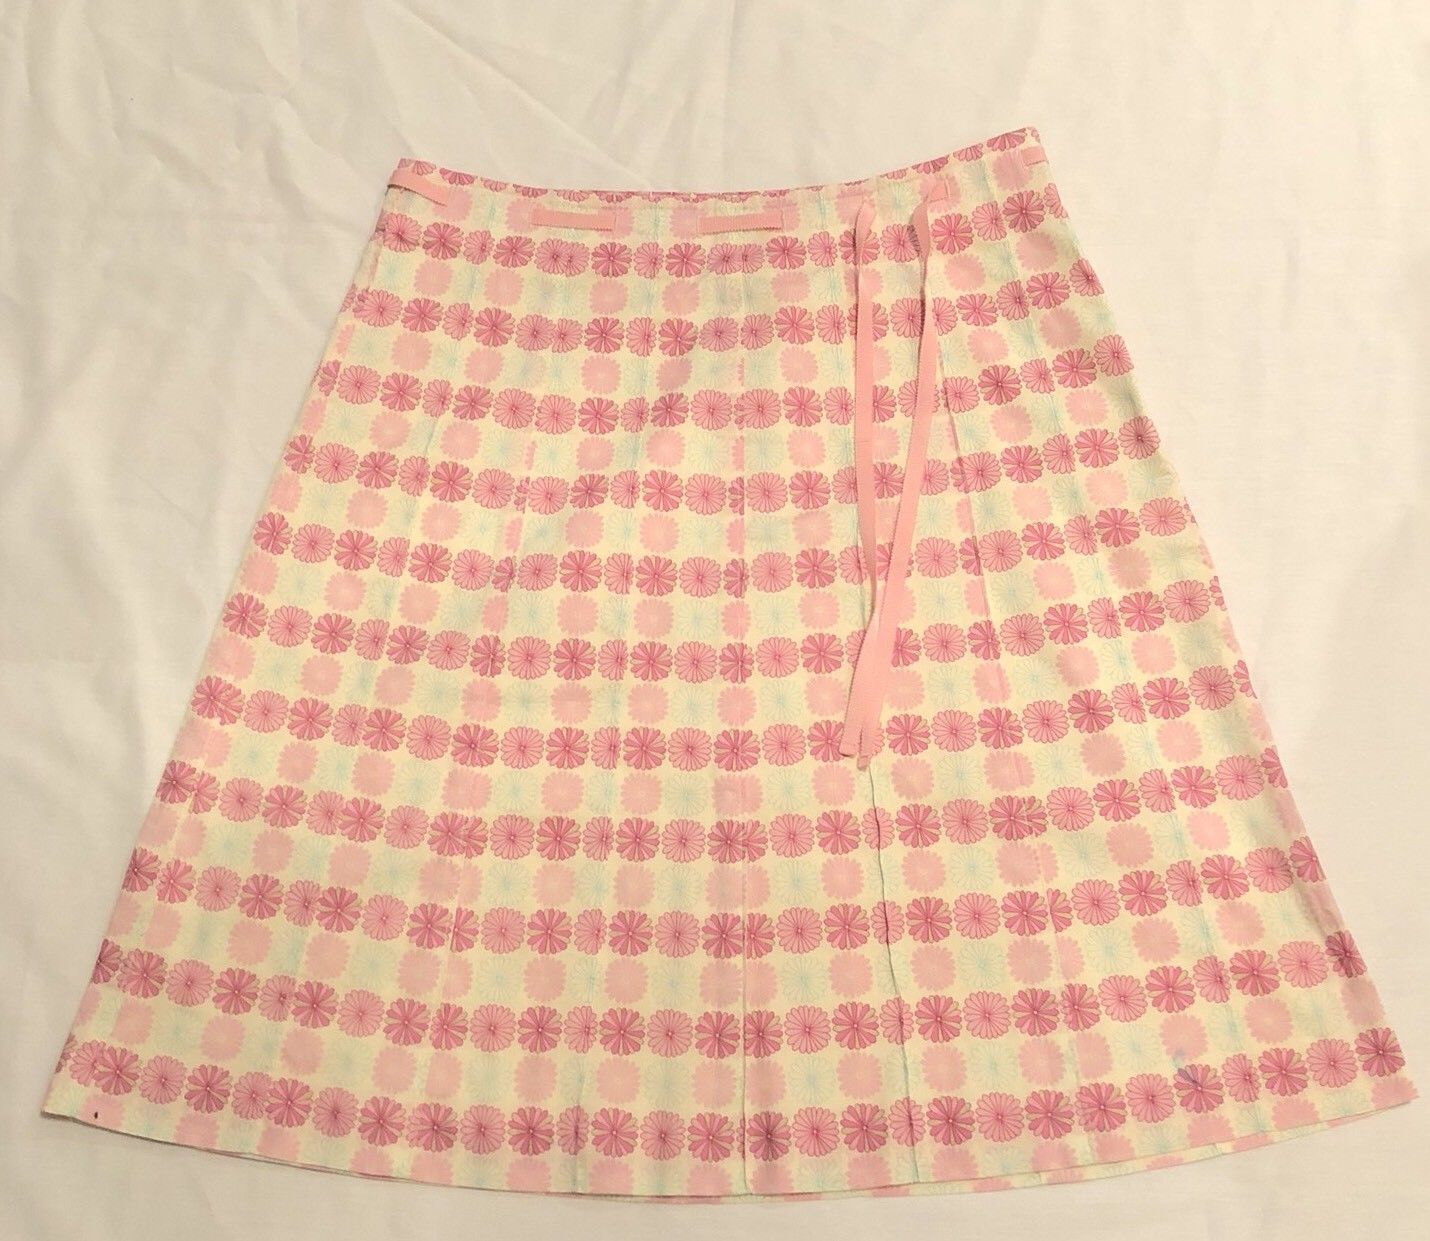 J. Crew Pink Floral Cotton Size 6 Skirt A Line to the knee Ribbon